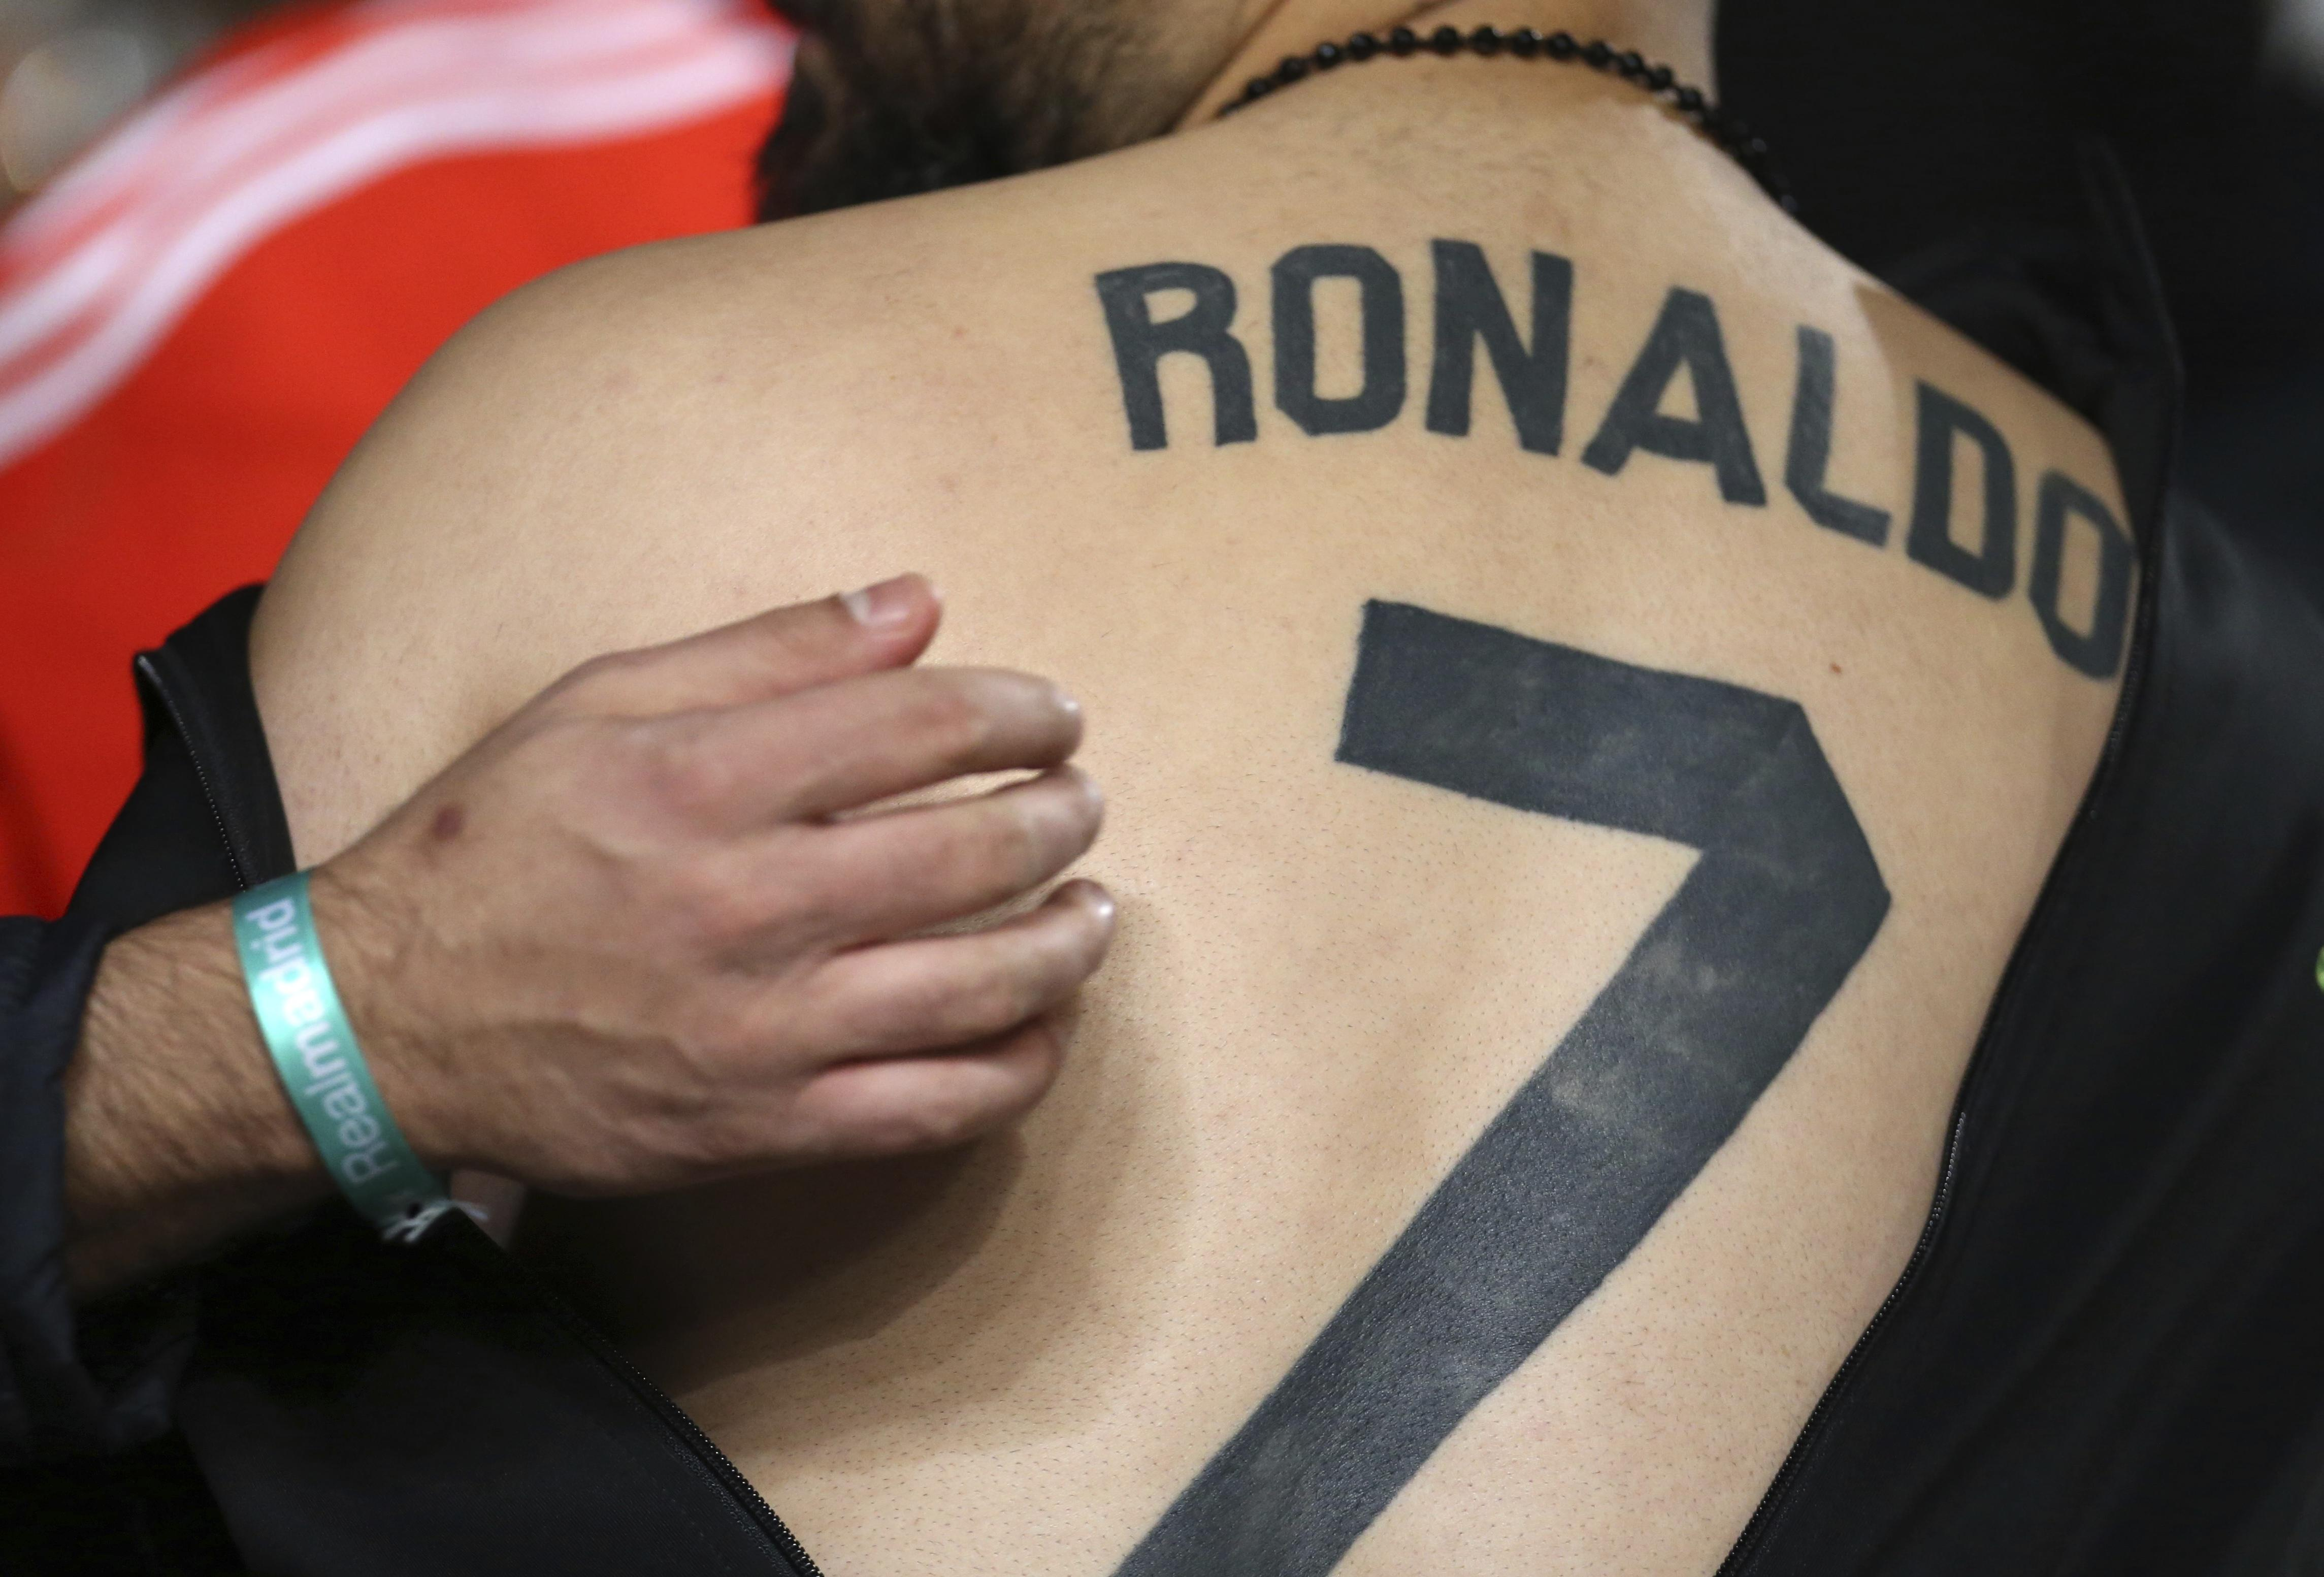 A fan unveiled a 'Ronaldo 7' tattoo during a Champions League game